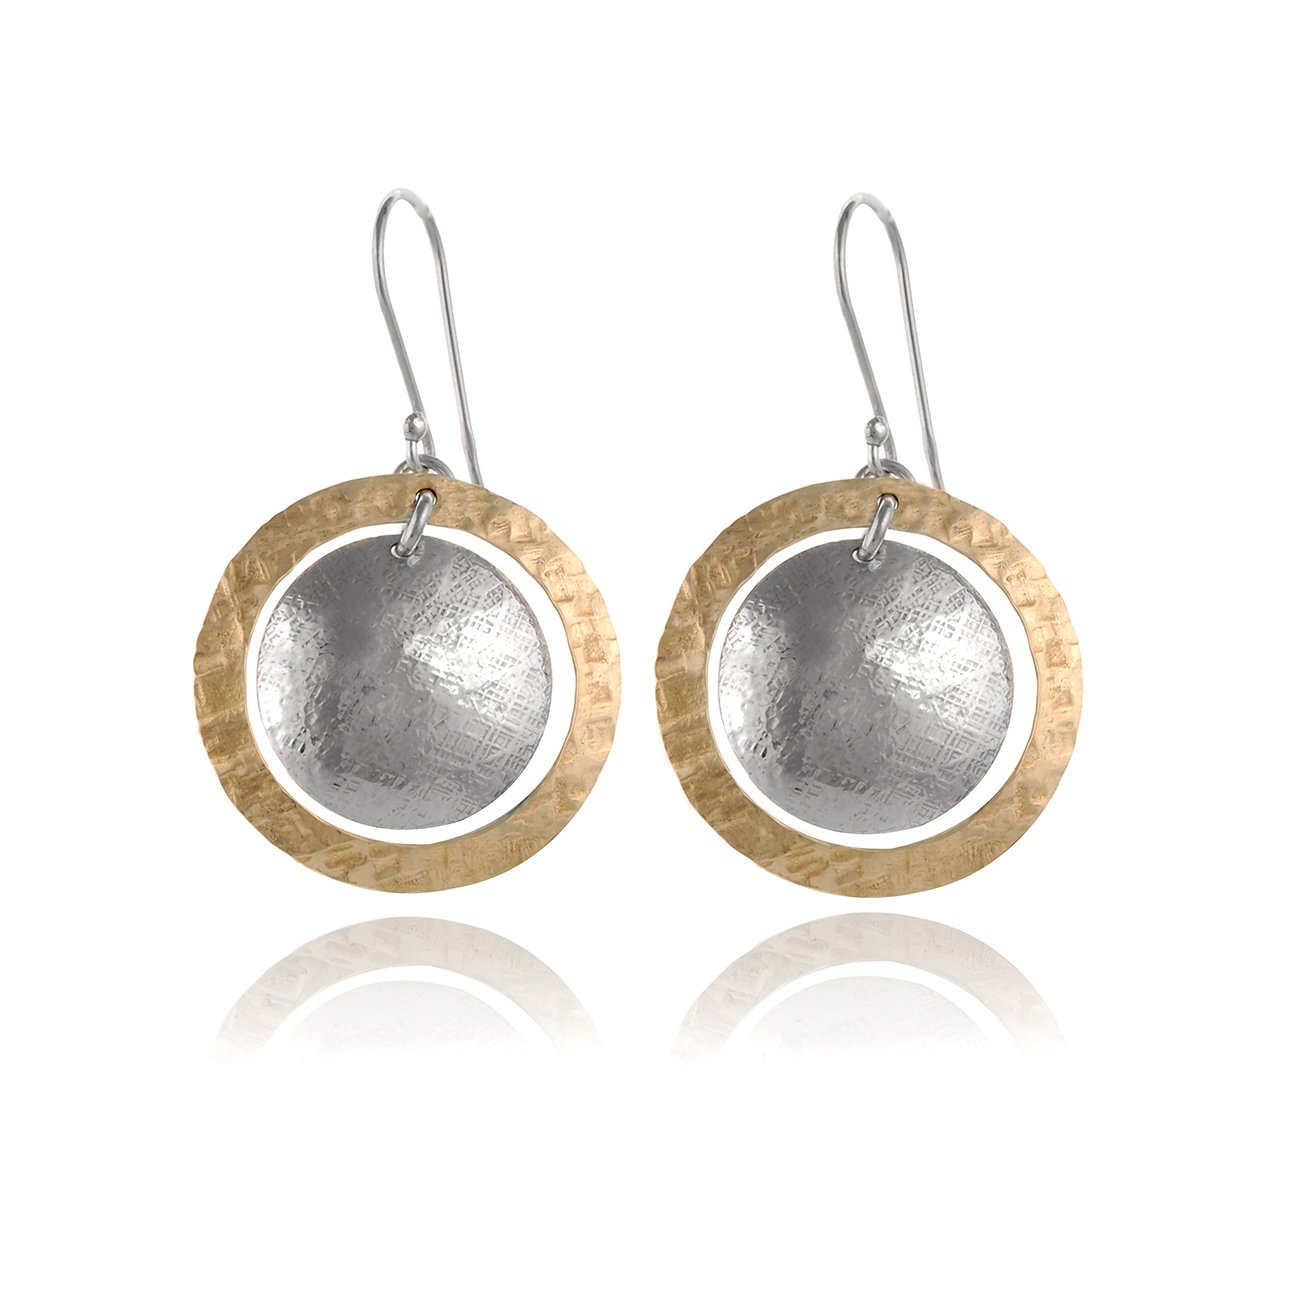 800e1b8d8 Amazon.com: Two Tone Hand Hammered Circle and Disc Earring 925 Sterling  Silver & 14k Gold Filled Dangle Earrings: Jewelry